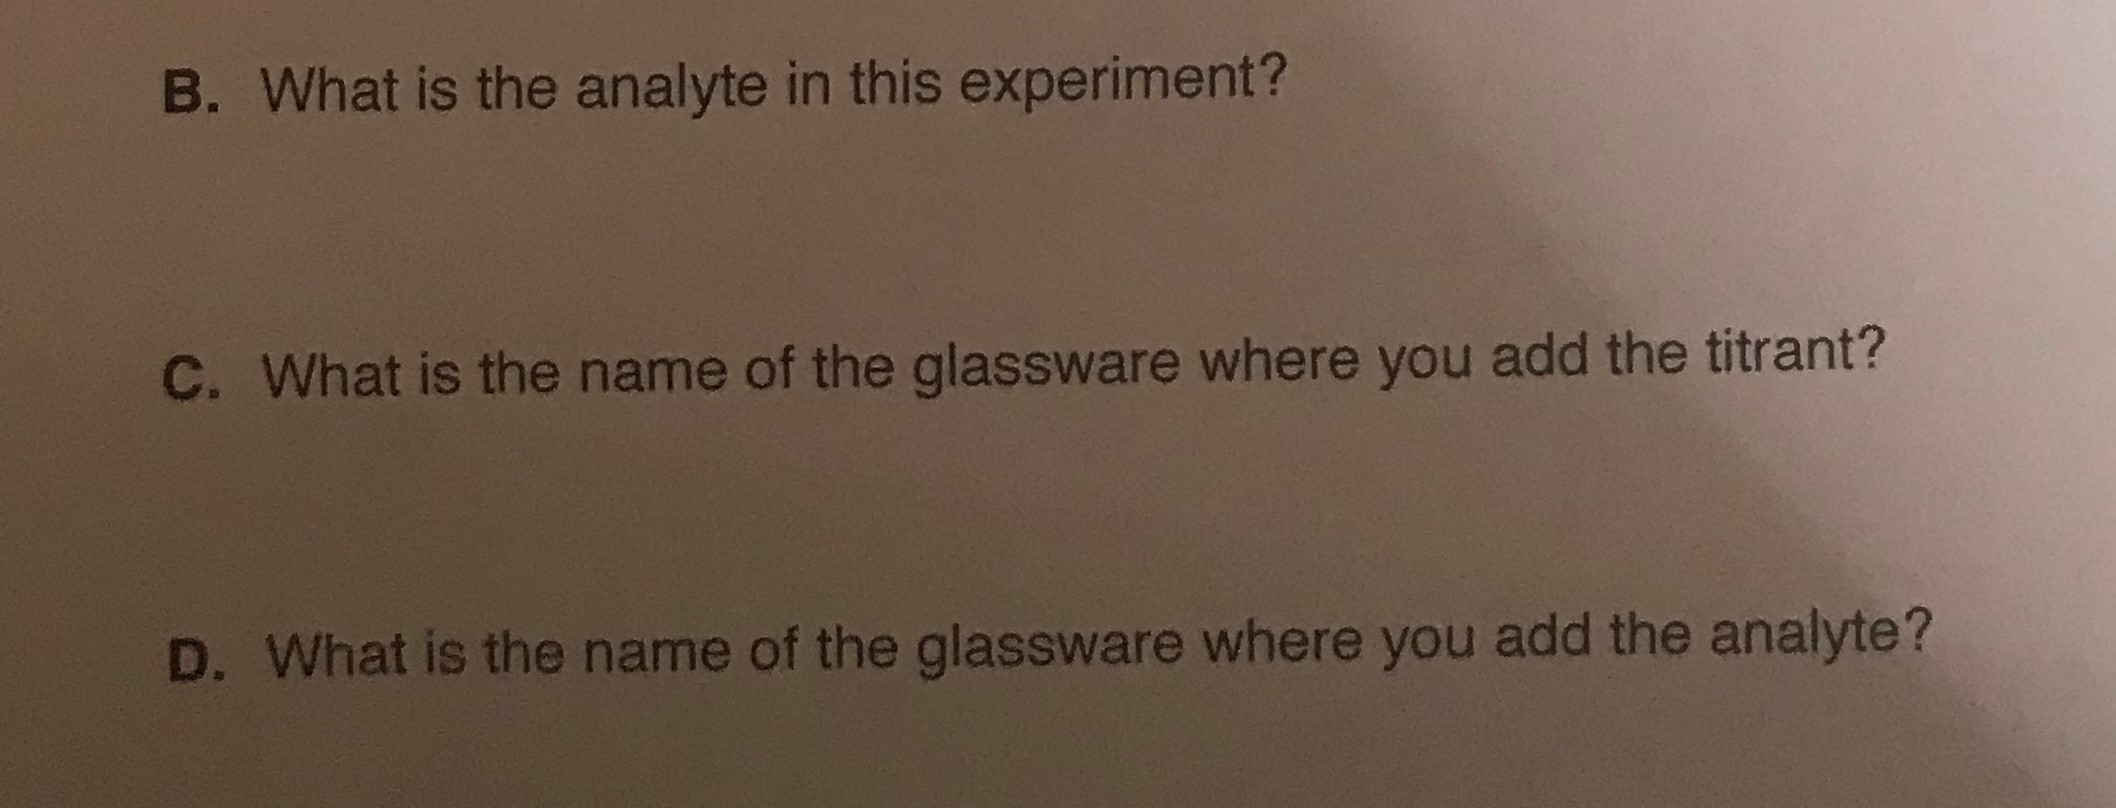 B. What is the analyte in this experiment? C. What is the name of the glassware where you add the titrant? D. What is the nam